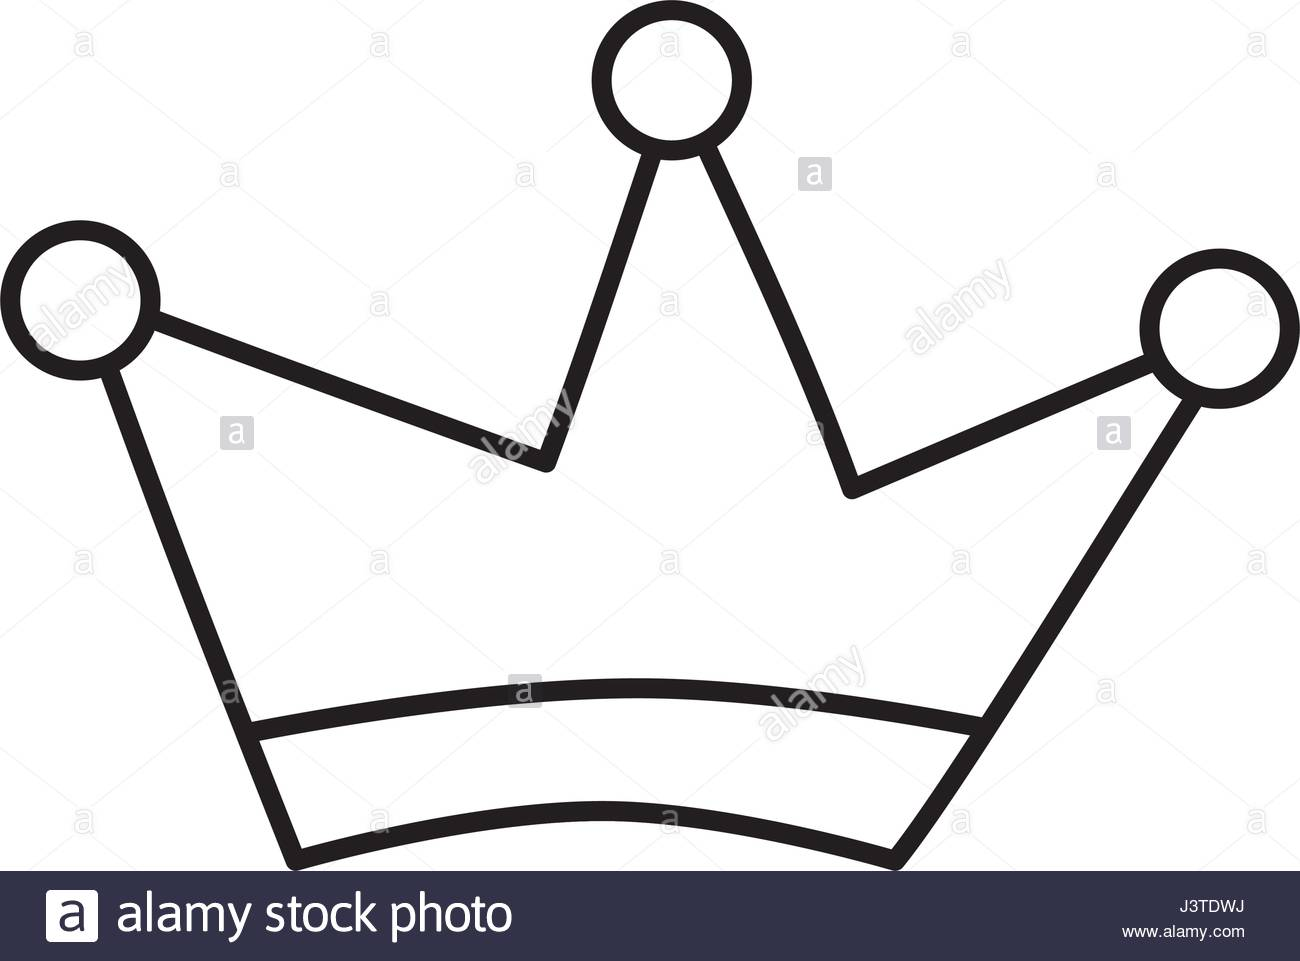 1300x961 King Crown Drawing Isolated Icon Stock Vector Art Amp Illustration